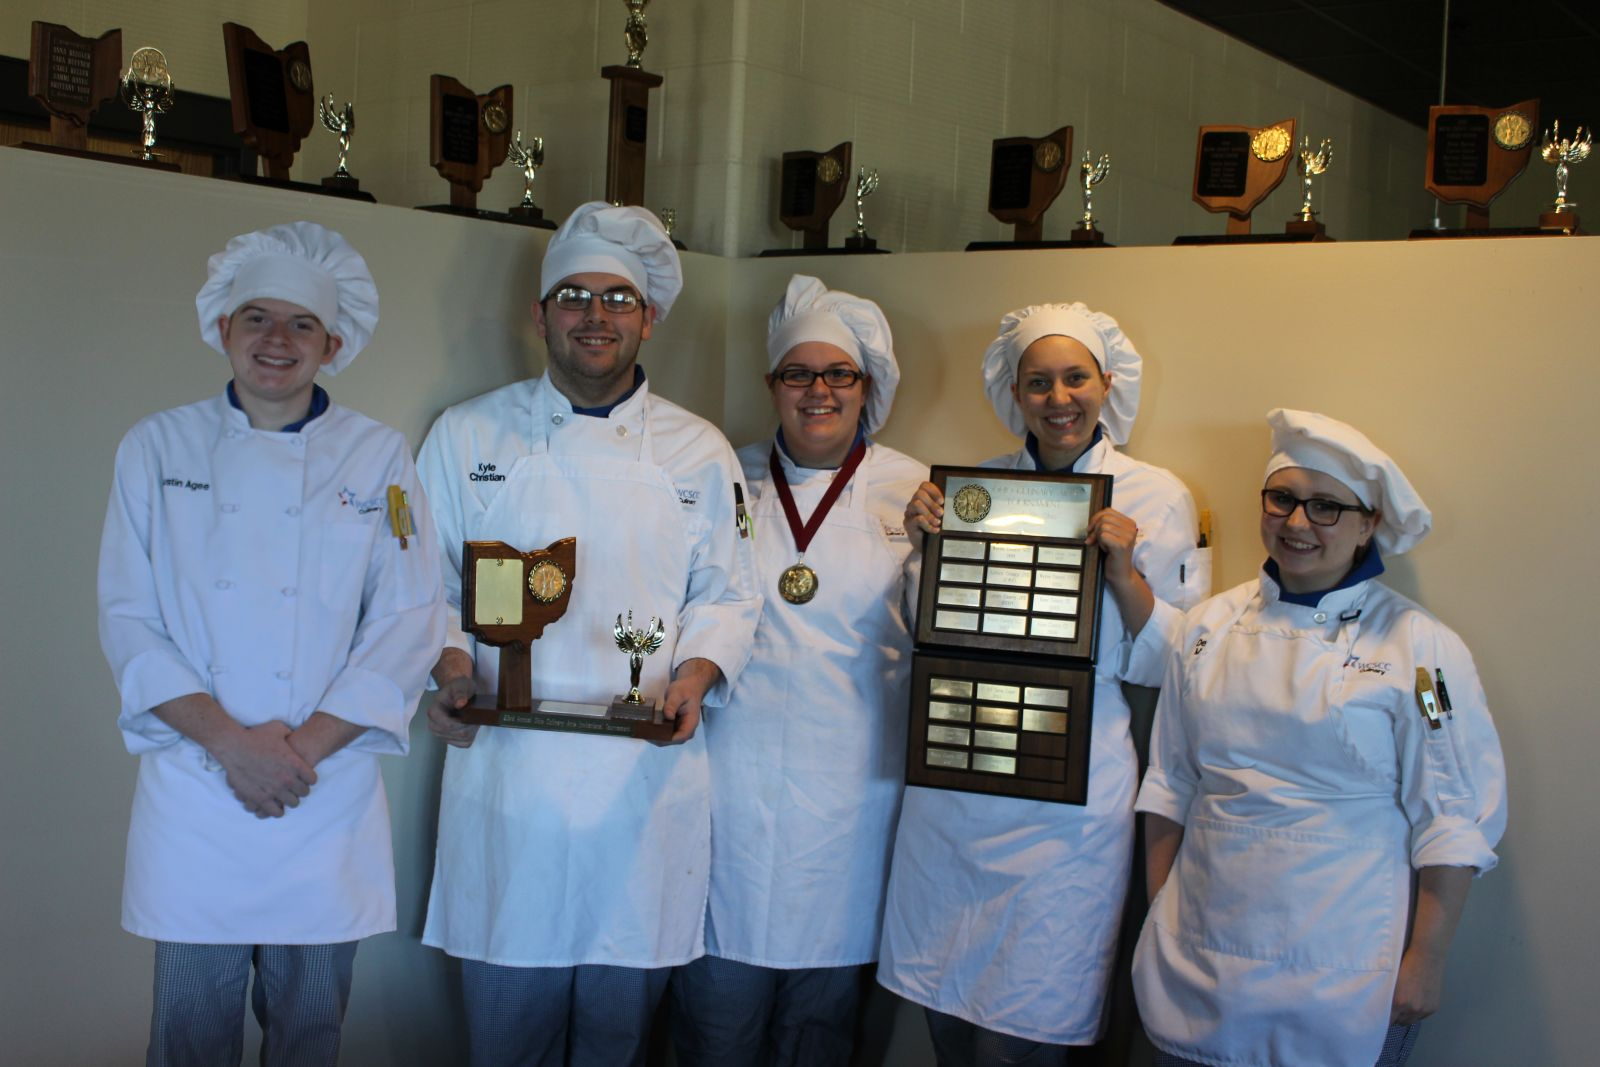 Image of WCSCC Culinary Arts team with awards